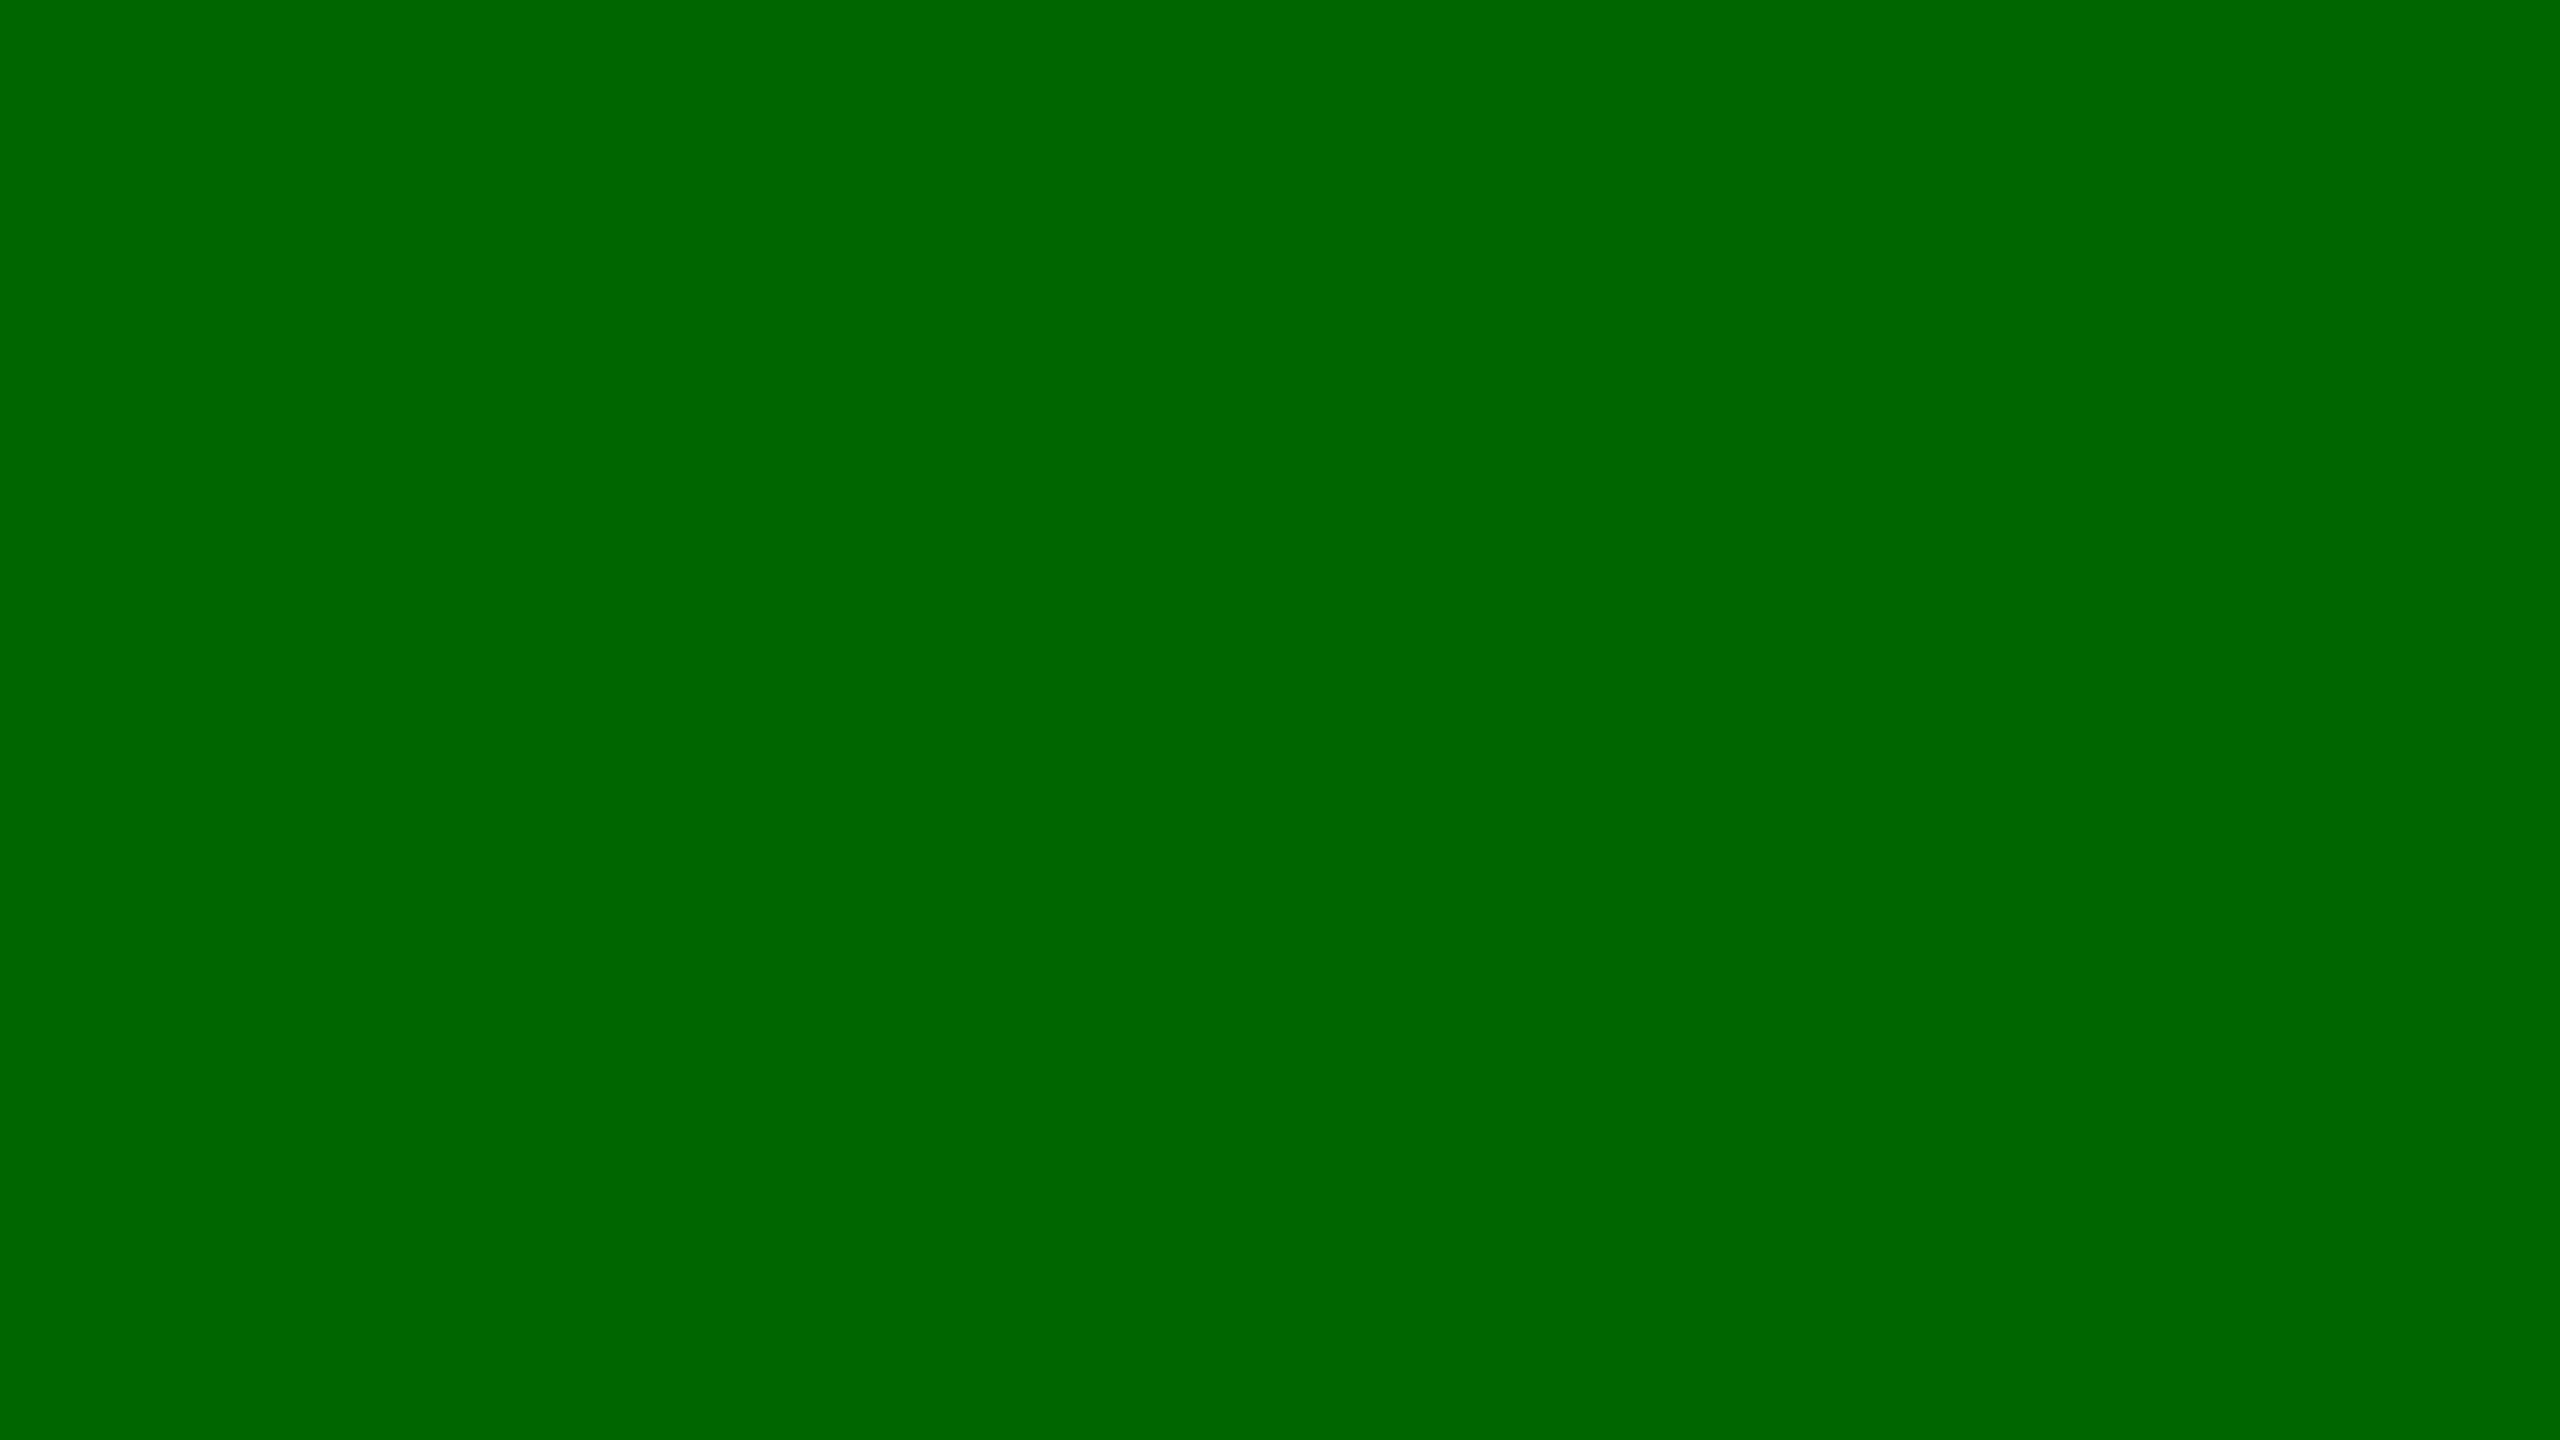 2560x1440 Pakistan Green Solid Color Background